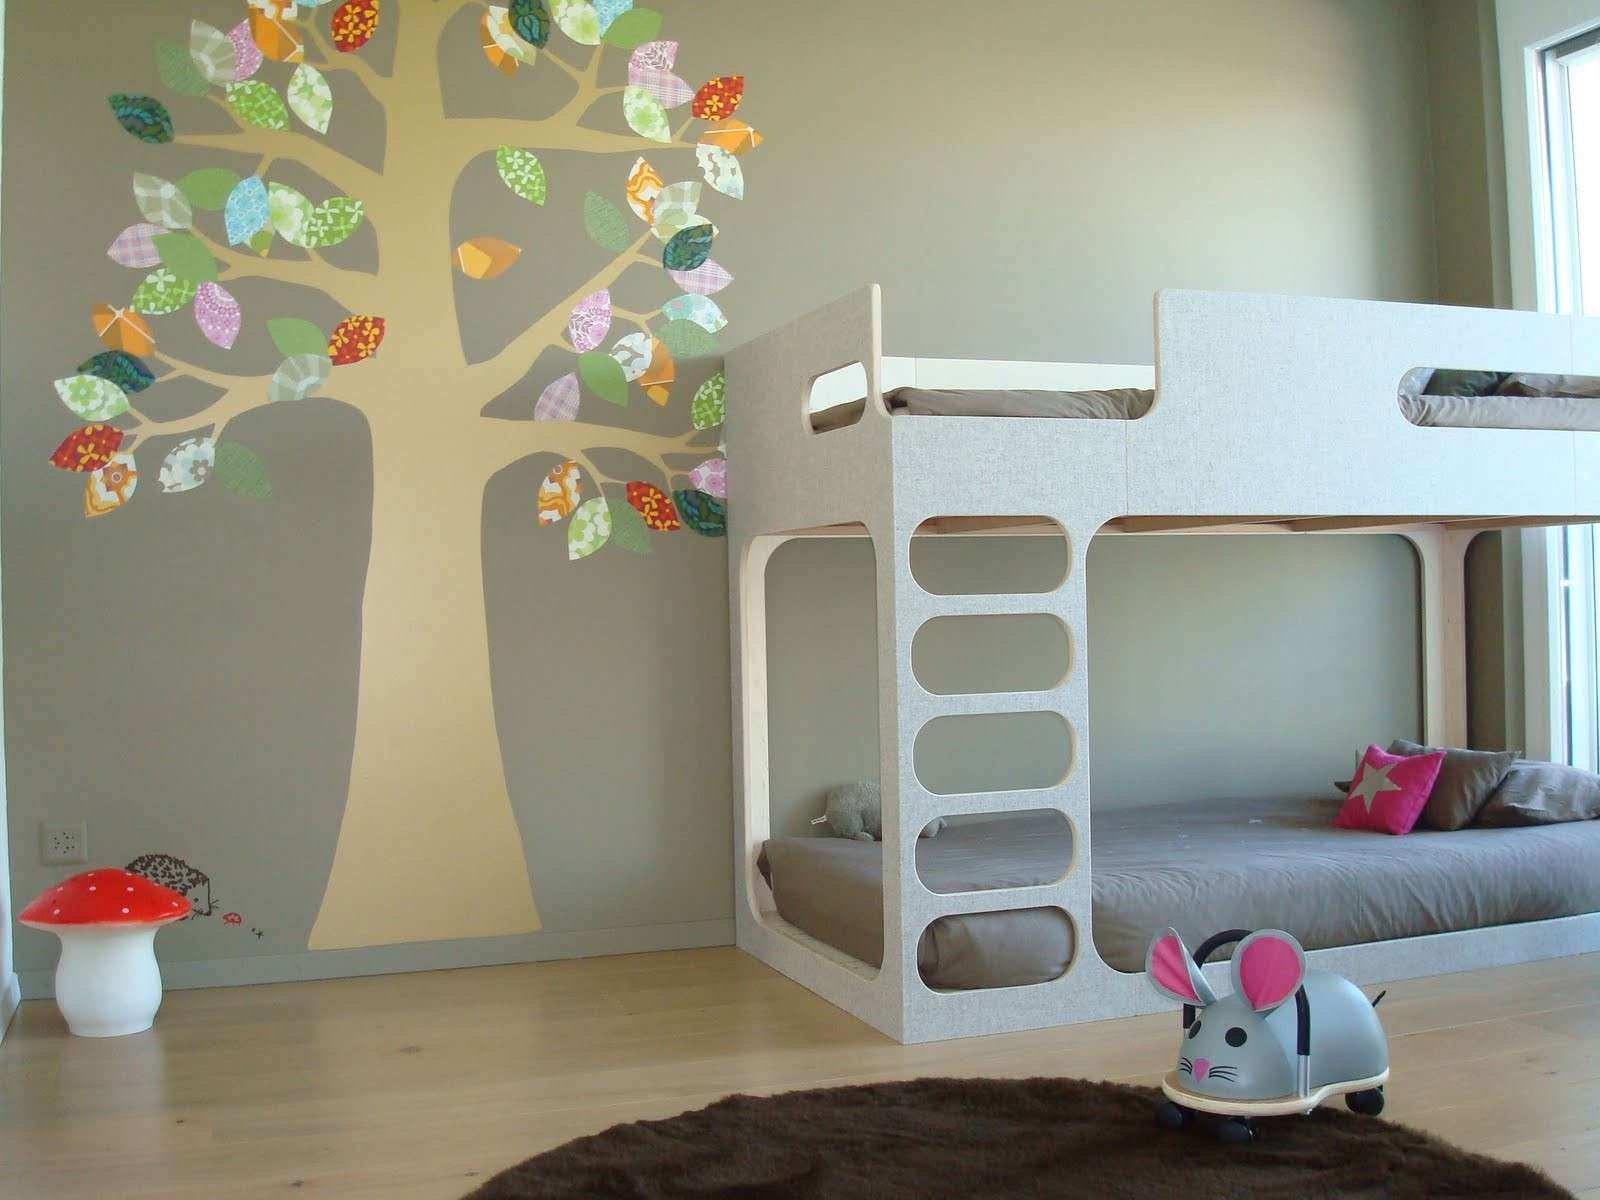 Wall Pictures For Bedroom Awesome Childrens Bedroom Wallpaper Ideas Home  Decor Uk